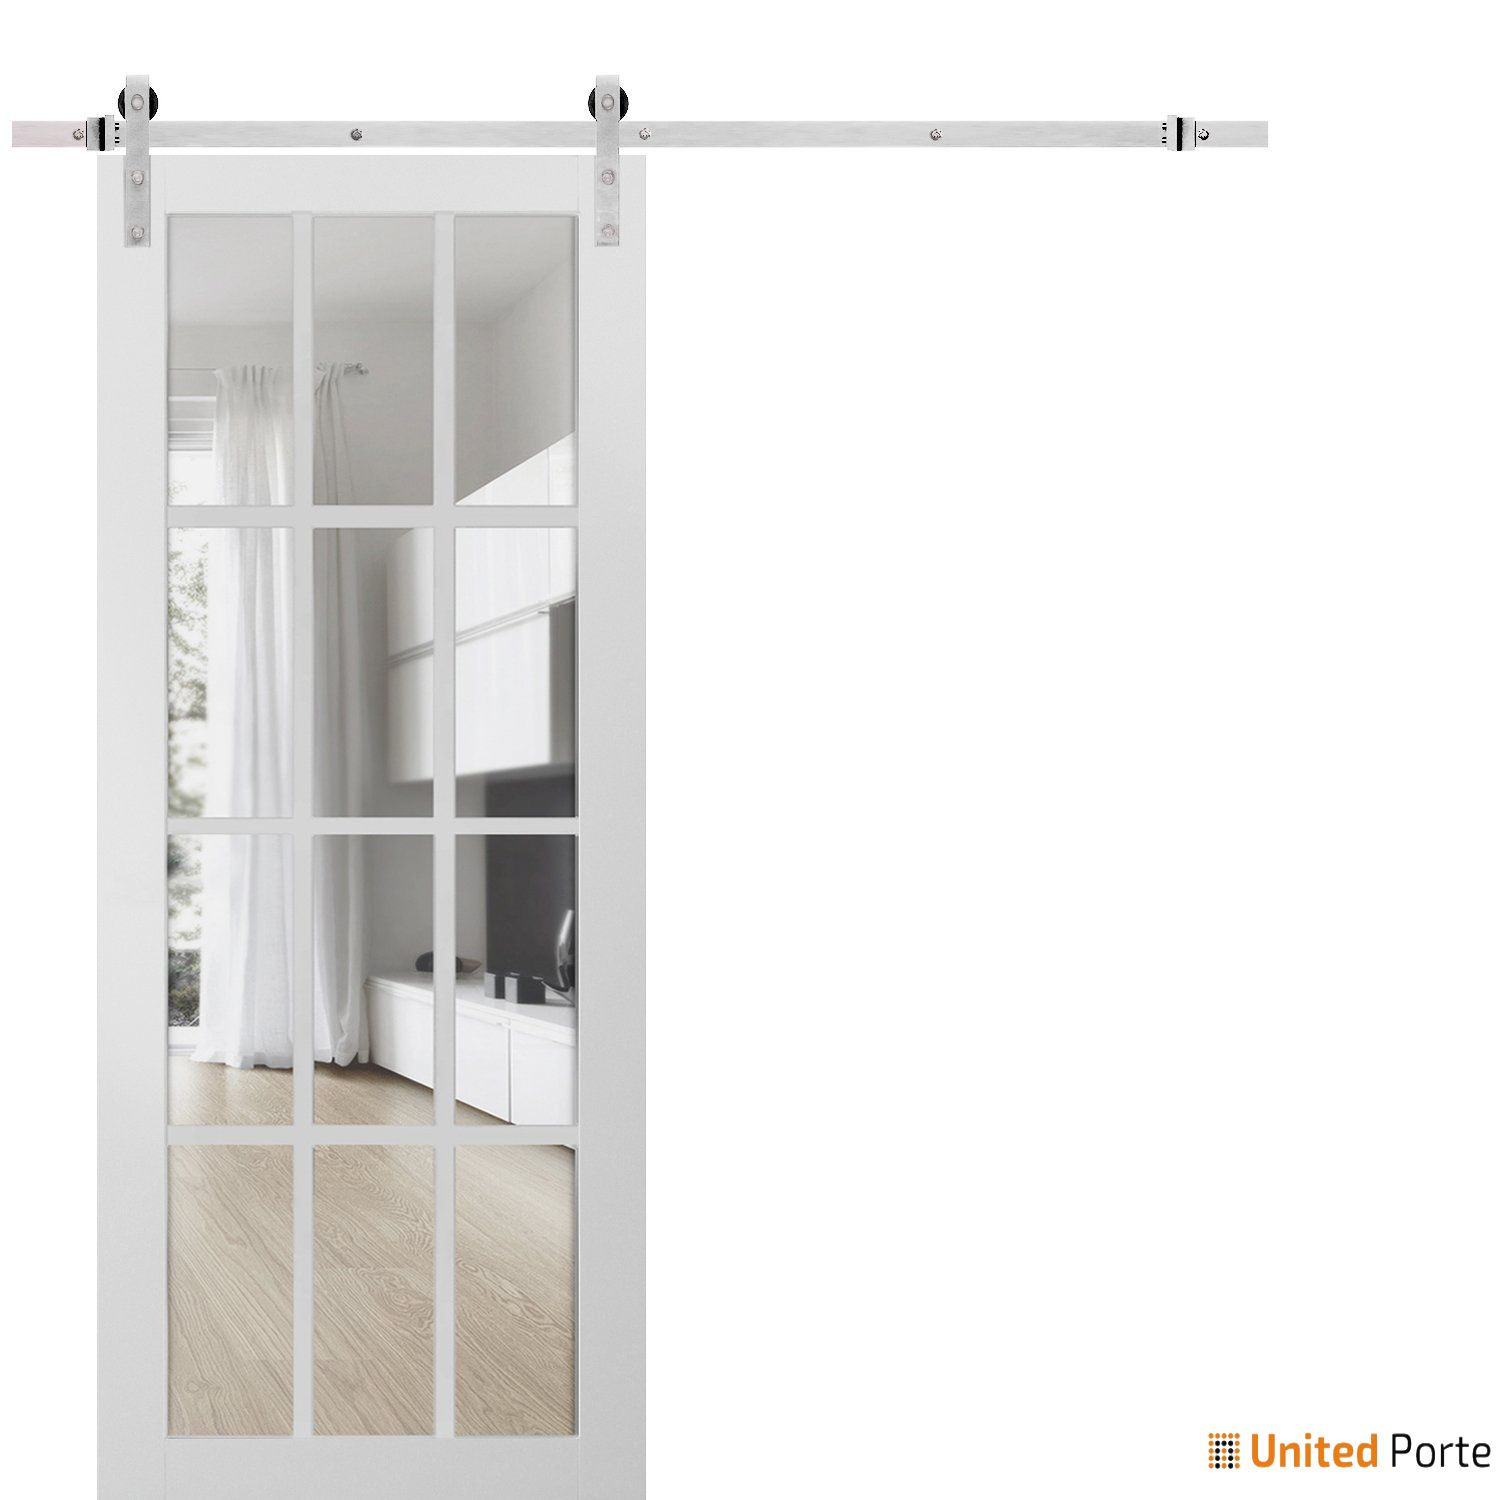 Felicia 3355 Matte White Sturdy Barn Door Clear Glass 12 lites with Stainless Hardware | Solid Panel Interior Barn Doors